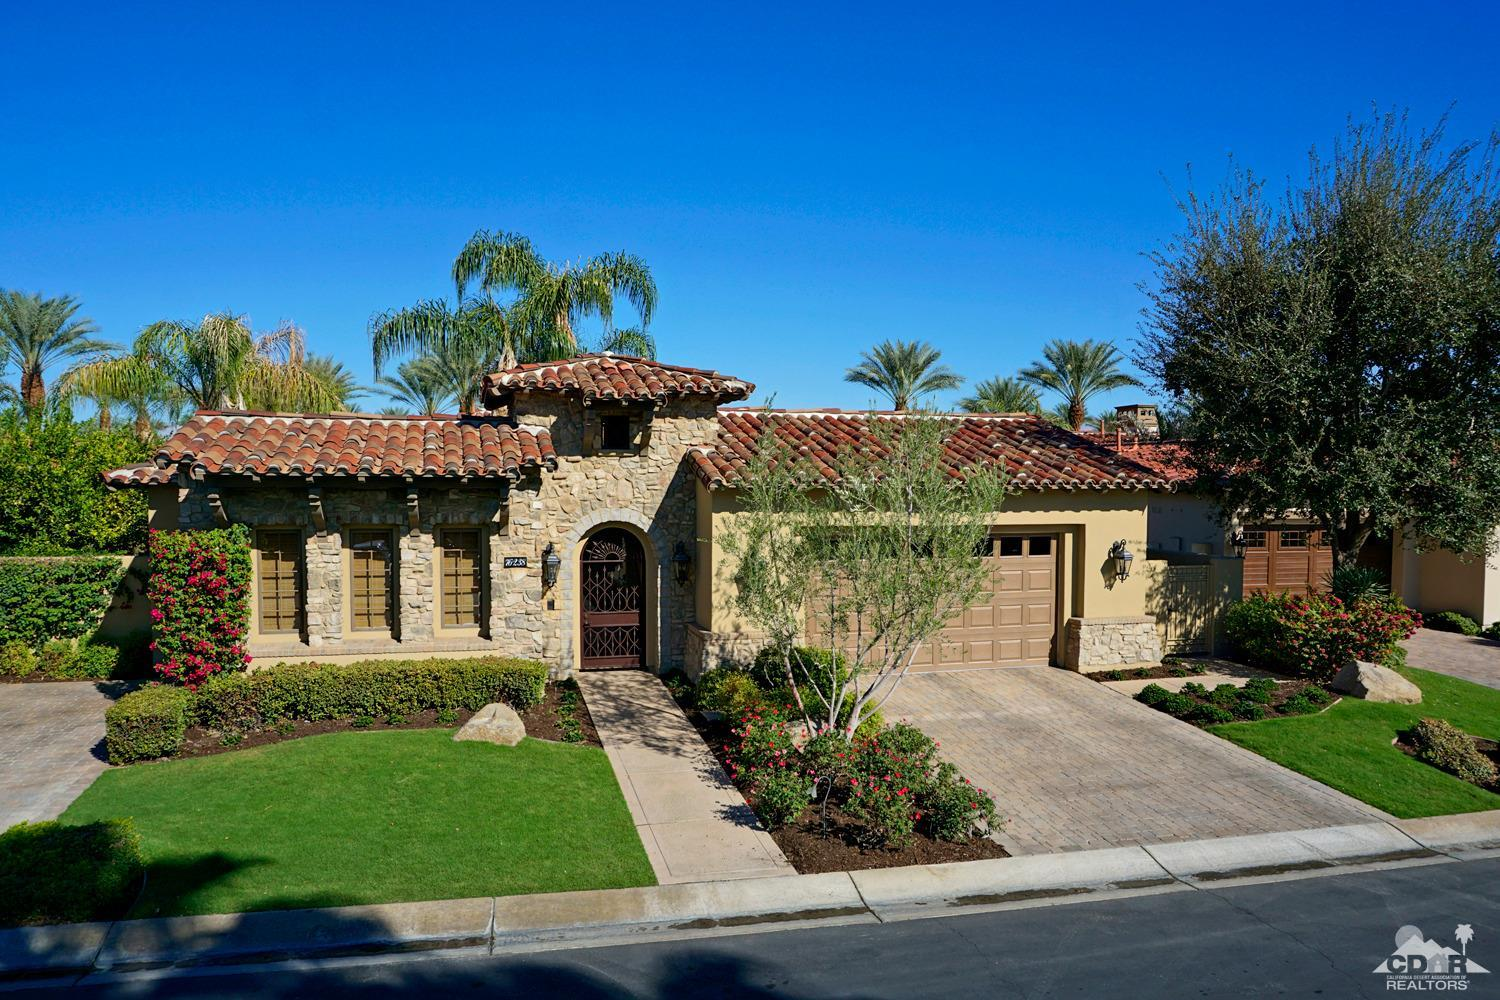 Toscana country club luxury homes for sale indian wells Toscana house